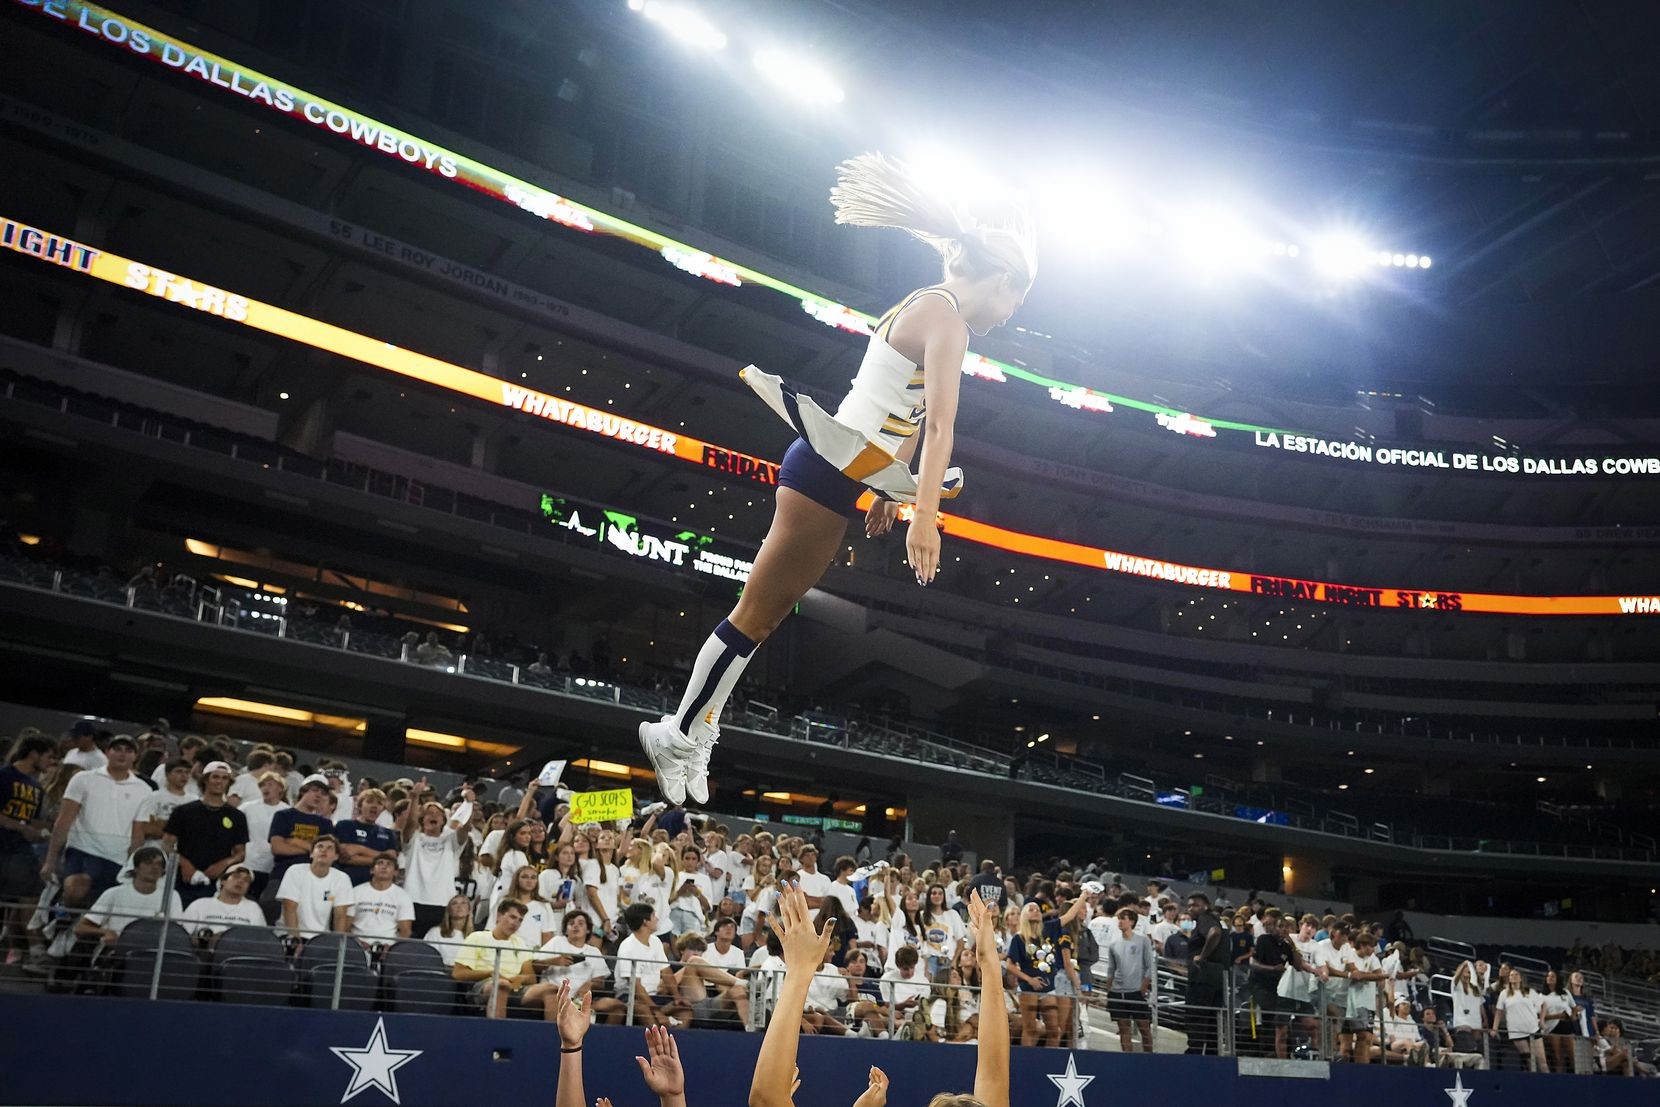 A Highland Park cheerleader is tossed into the air during the second half of a high school football game Southlake Carroll at AT&T Stadium on Thursday, Aug. 26, 2021, in Arlington.